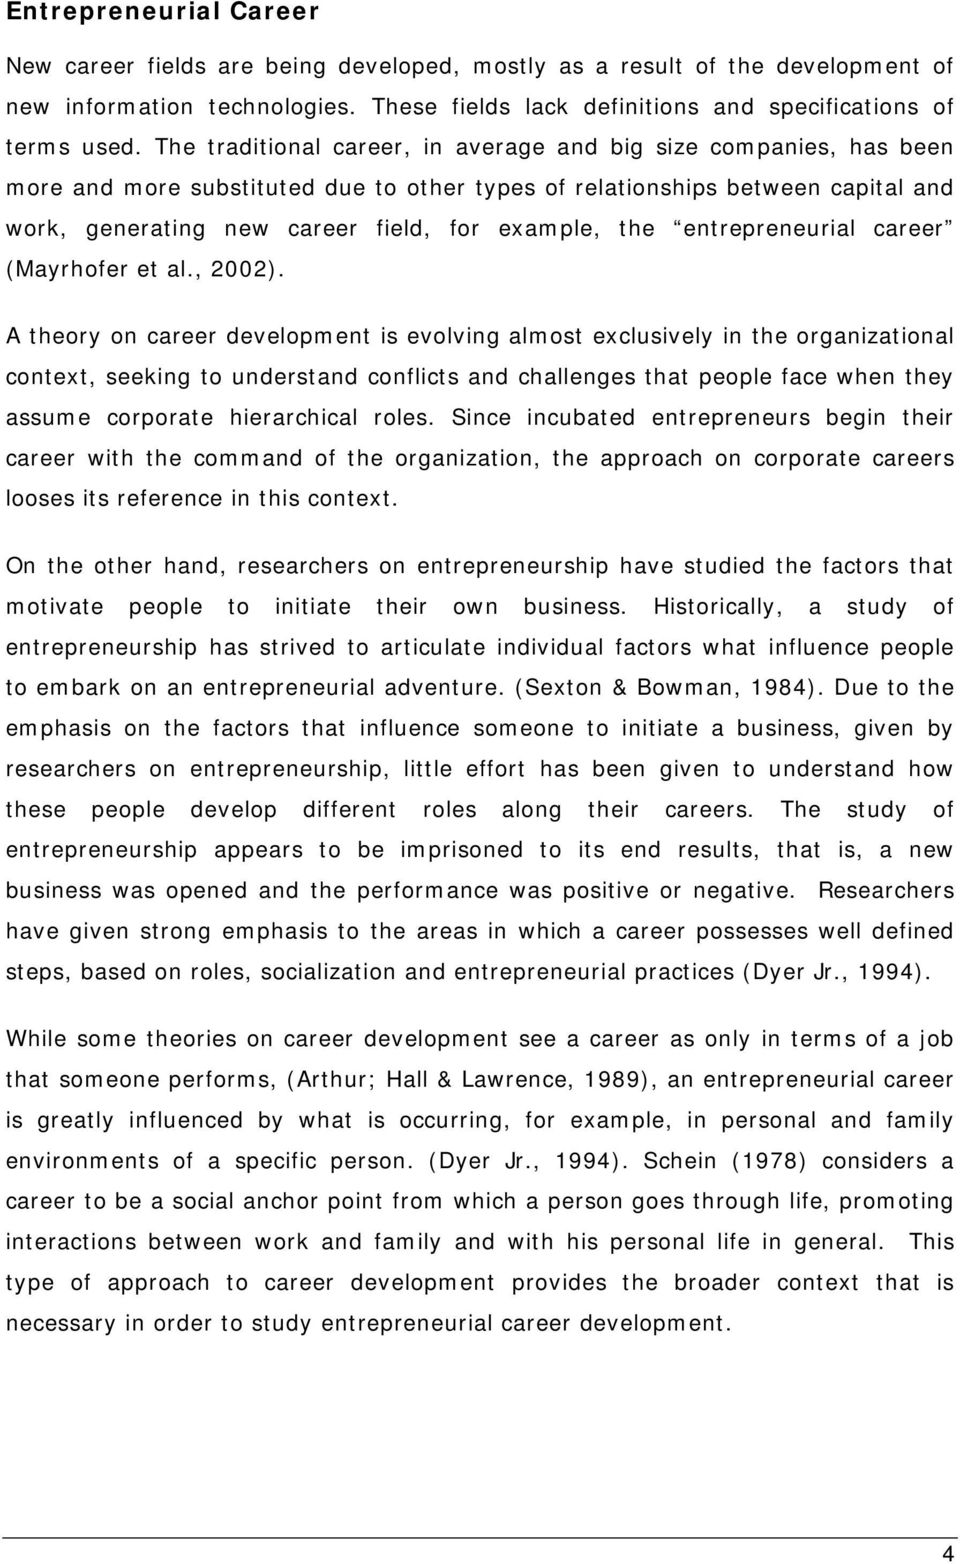 the entrepreneurial career (Mayrhofer et al., 2002).